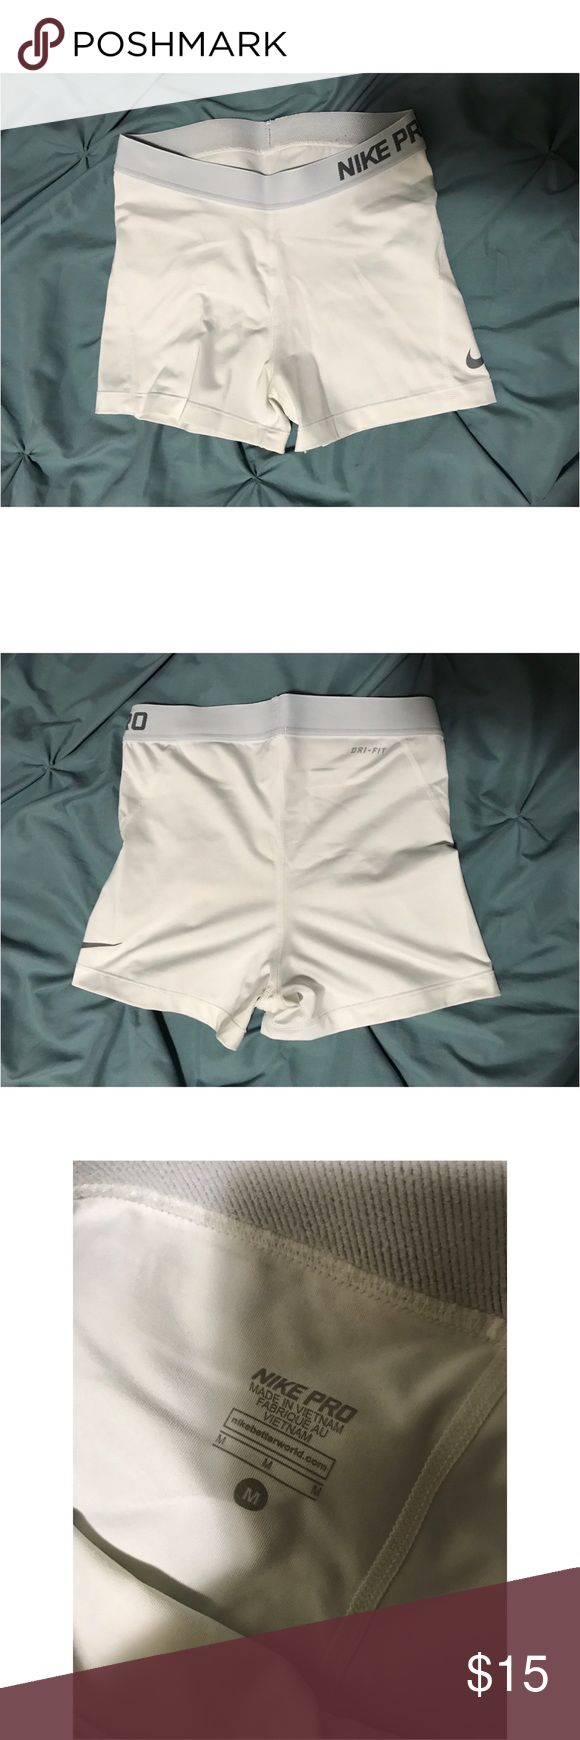 White Nike Pro Spandex Shorts White Nike Pro Spandex Shorts, size medium. Only worn a few times. Yes, they are see through.  Pet free and smoke free home. Please ask any questions or let me know if you'd like to see any other photos! Nike Shorts